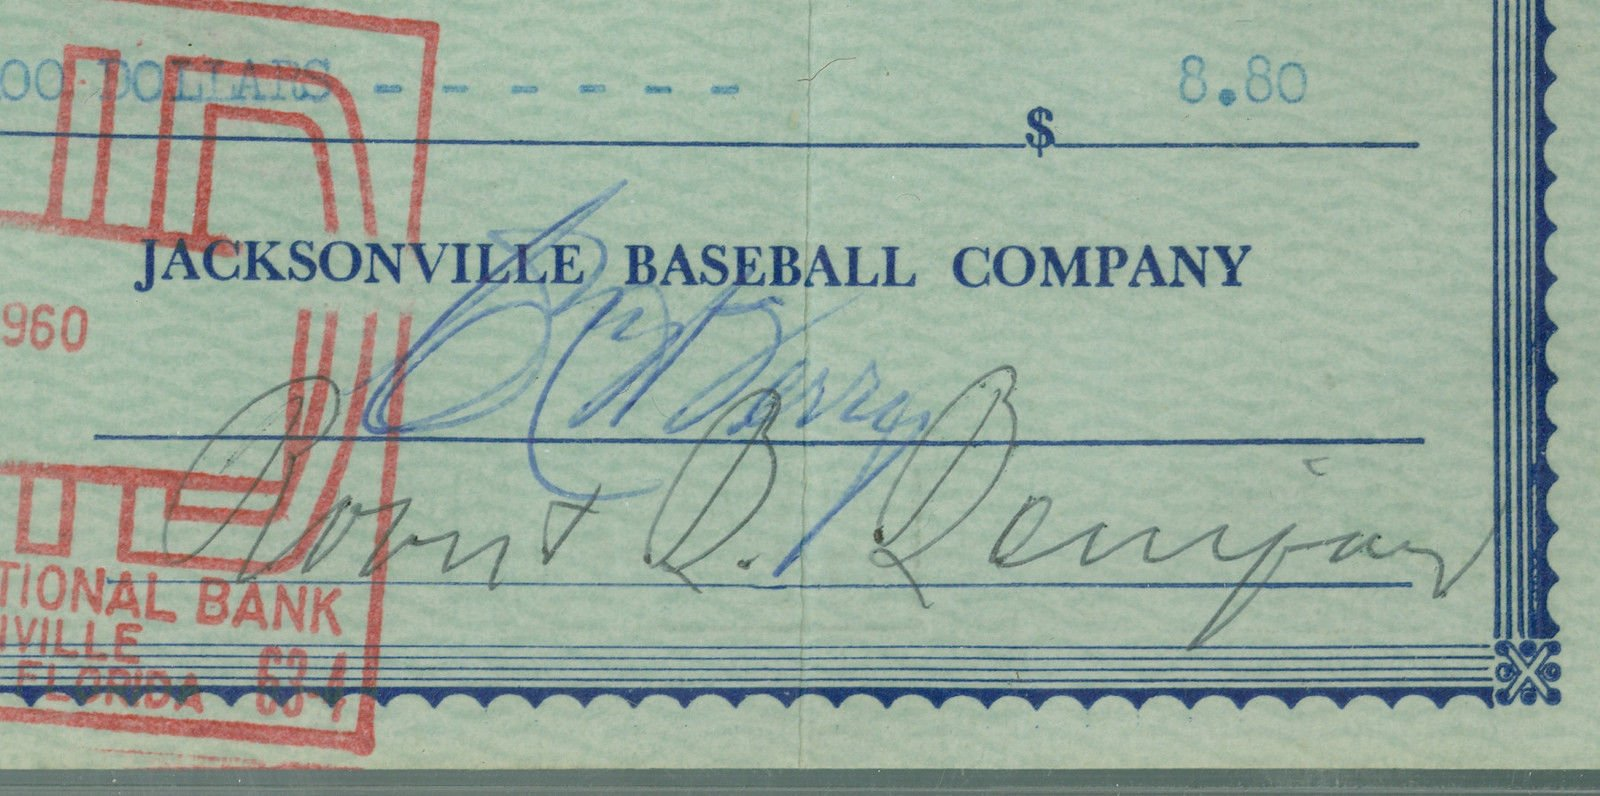 William Bill Terry Autographed Signed 1960 Payroll Check PSA/DNA Slabbed 5X12